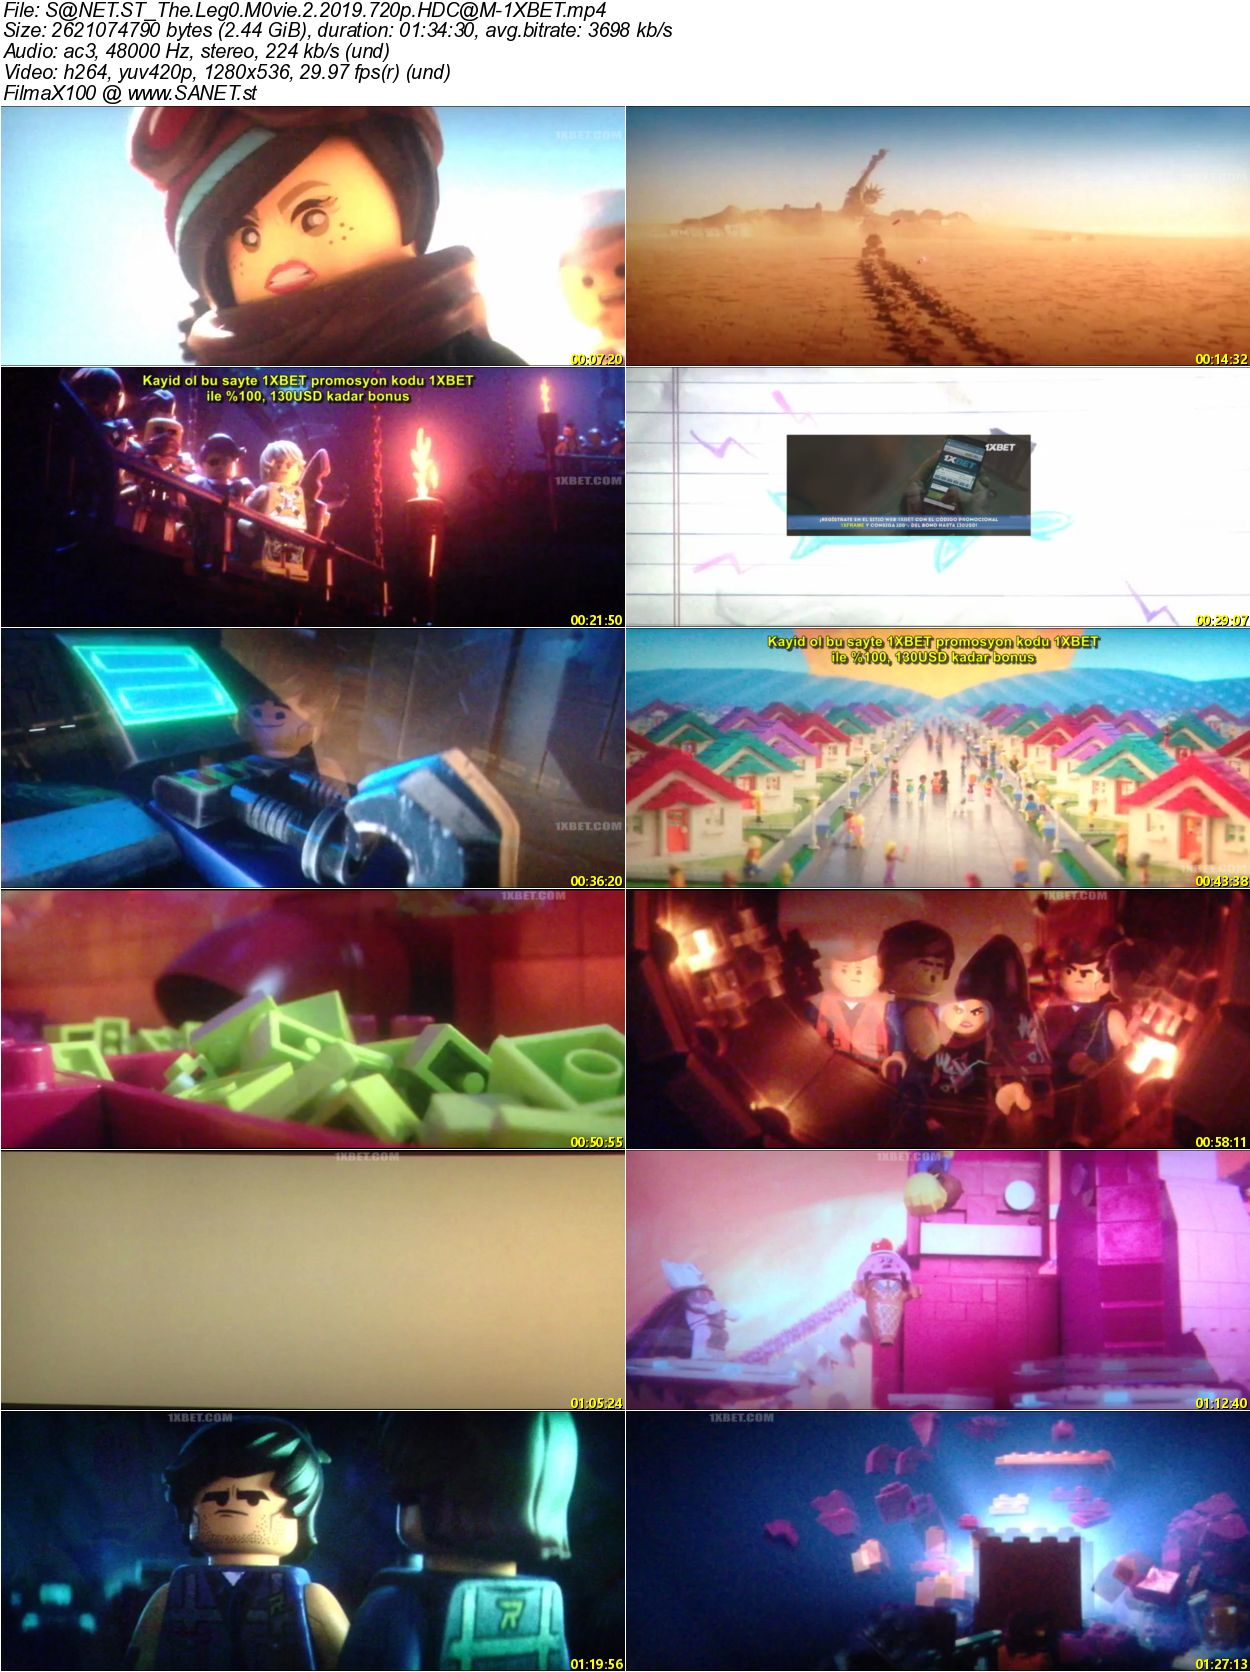 Download The Lego Movie 2 2019 720p HDCAM-1XBET - SoftArchive